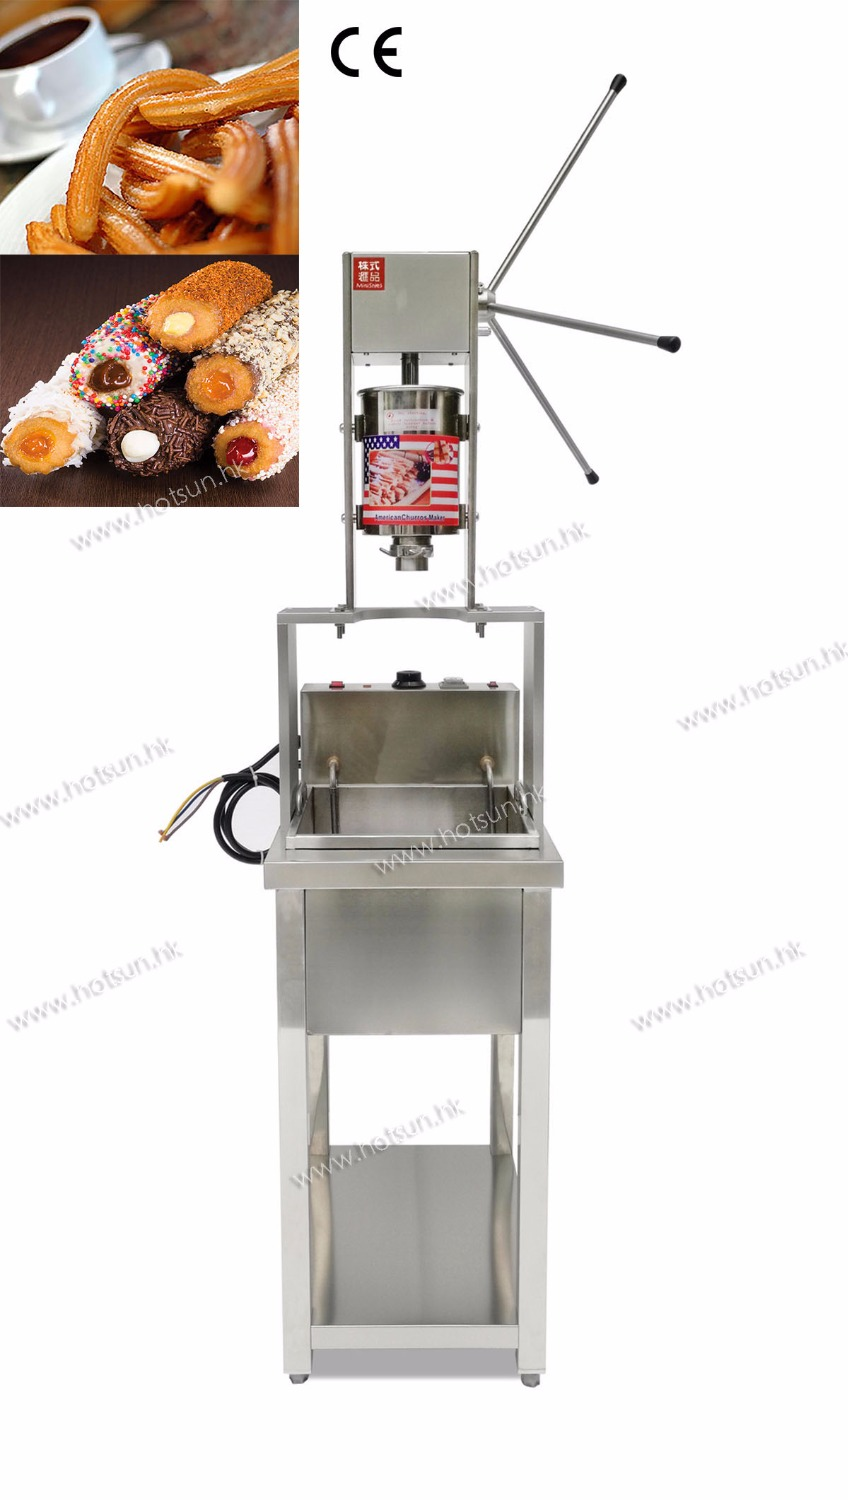 5L Professional 304 Stainless Steel Churros Maker machine with 20L Electric Deep Fryer 5l stainless steel spanish churro maker fried dough sticks machine with 6l electric fryer commercial churros machine